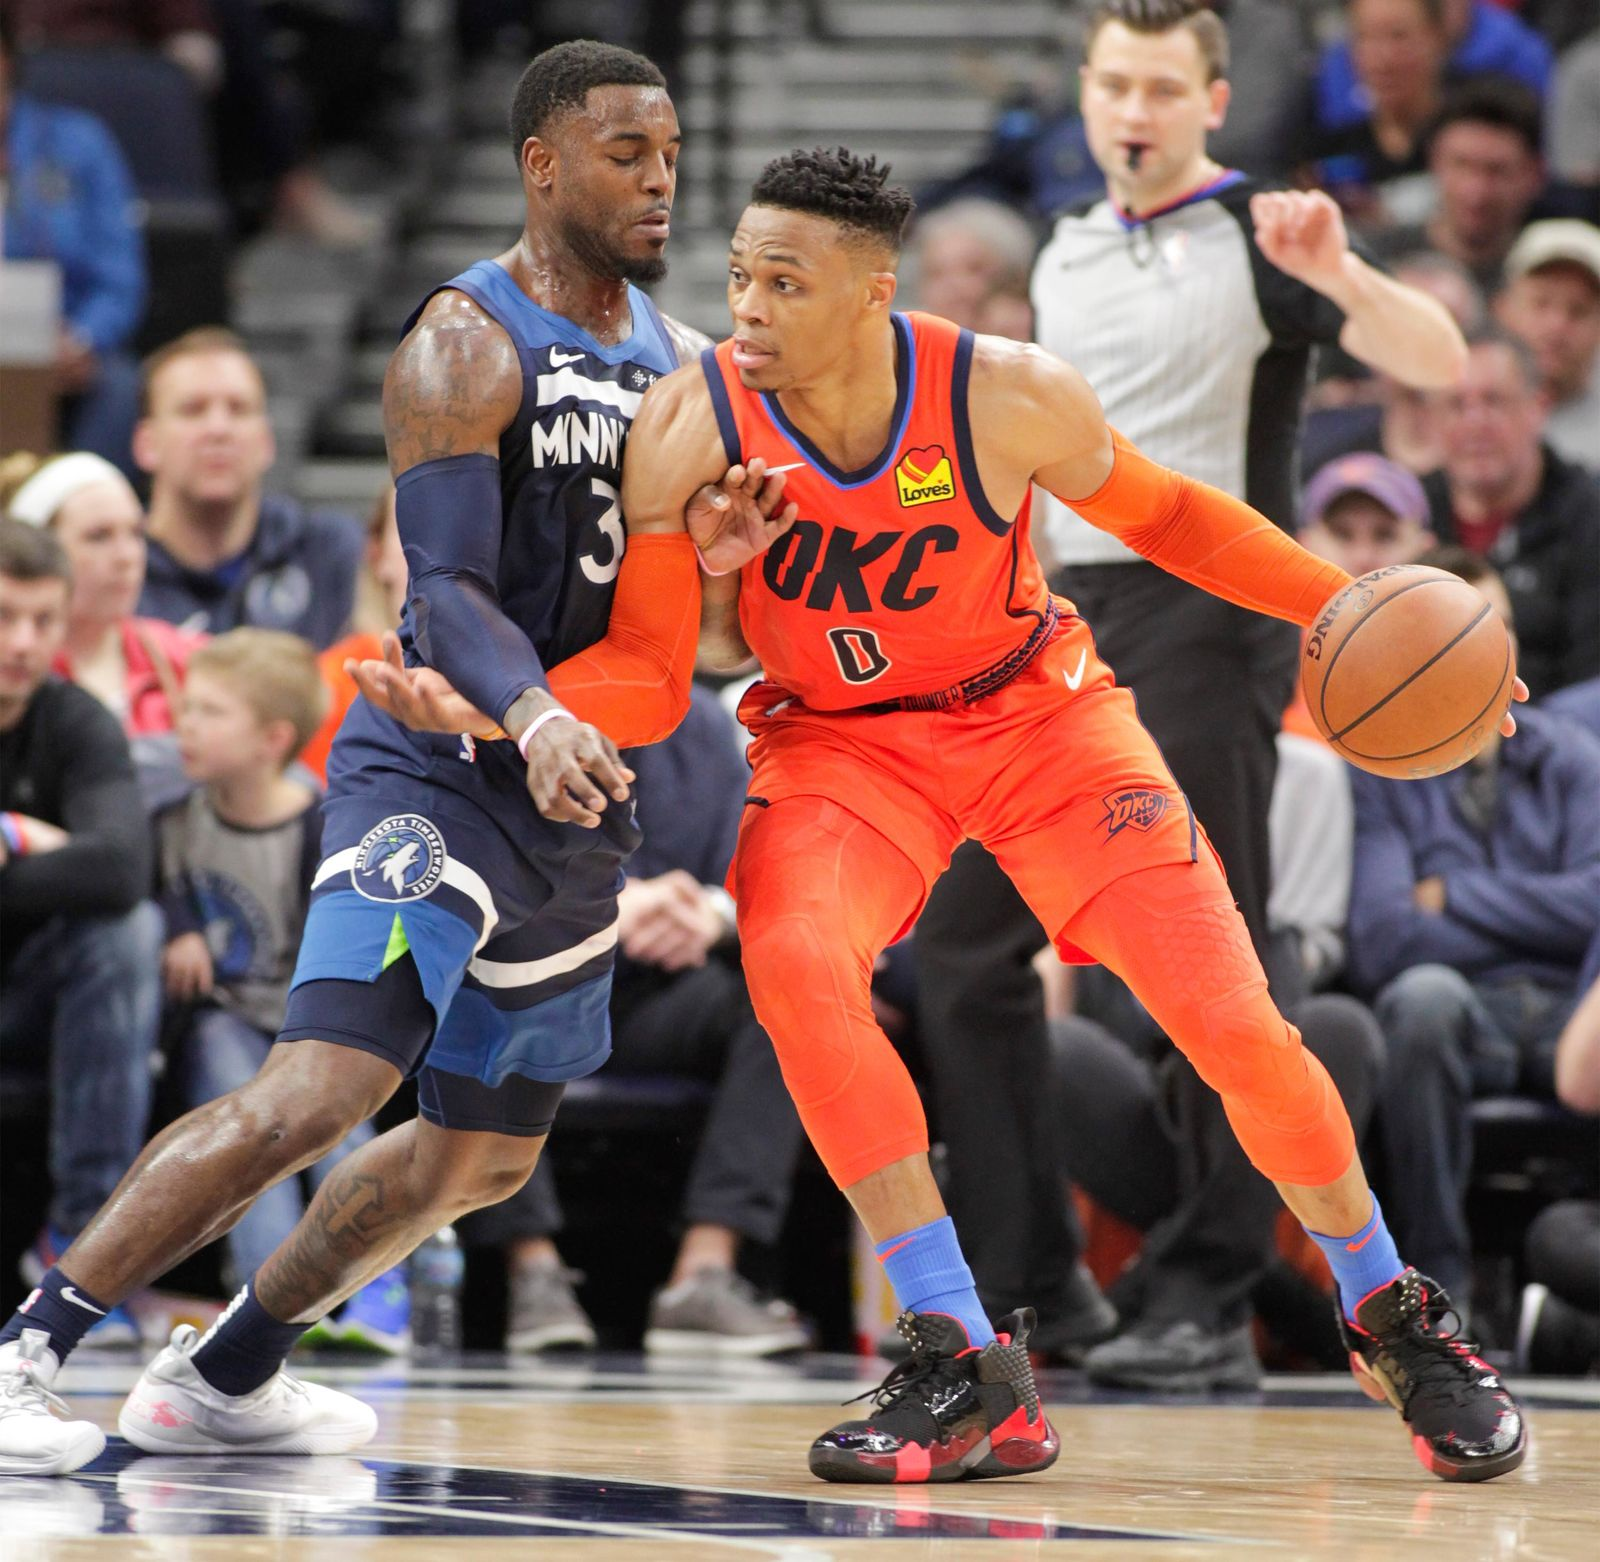 Oklahoma City Thunder guard Russell Westbrook (0) drives against Minnesota Timberwolves guard Jared Terrell (3) during the first half of a NBA basketball game Sunday, April 7, 2019, in Minneapolis. (AP Photo/Paul Battaglia)